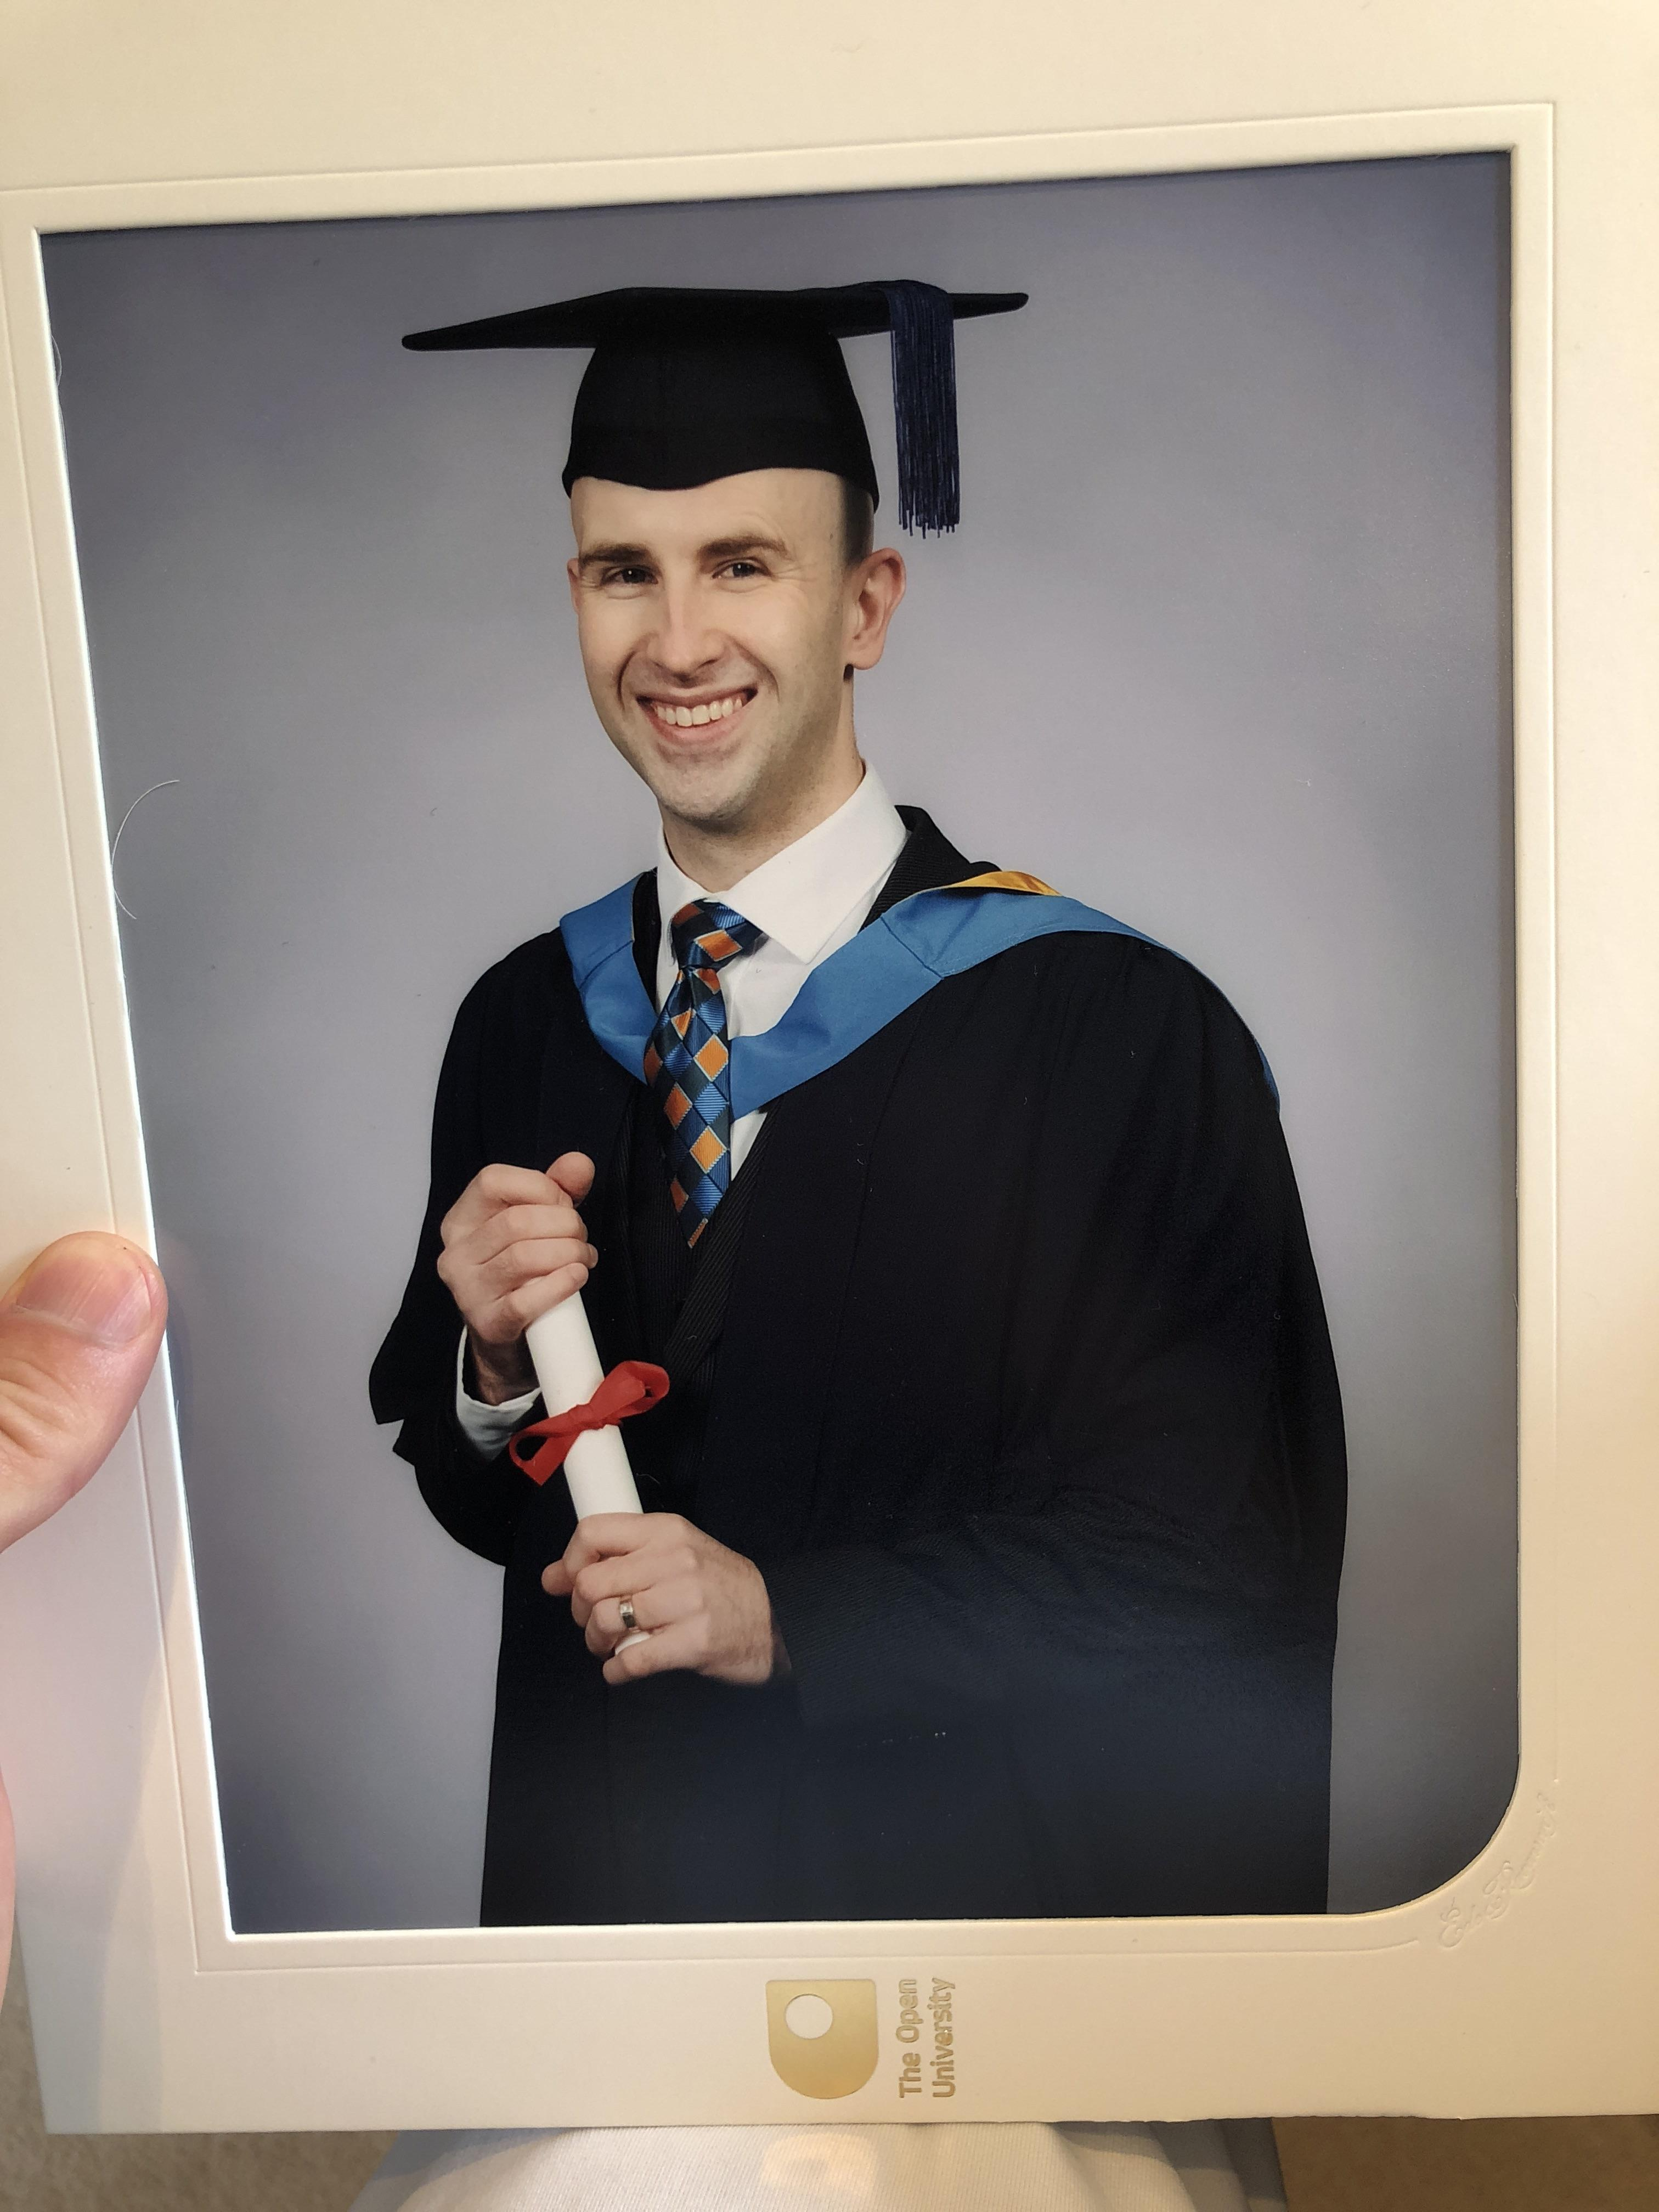 Never too late. At 37, I got my First-Class Law Degree with Open University [image]